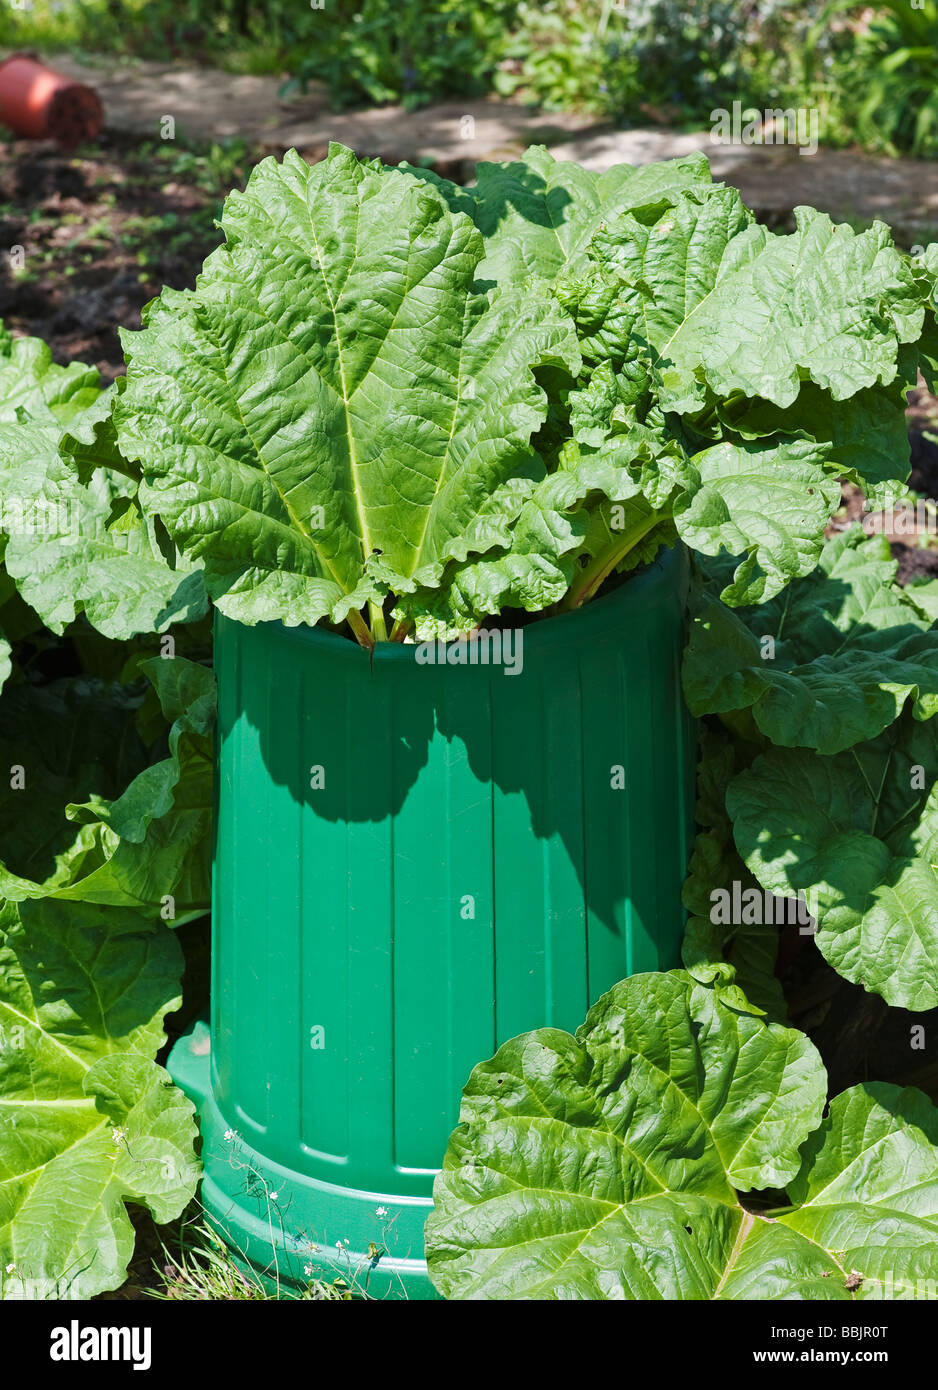 'Timperley Early' rhubarb being forced to produce long sticks for picking - Stock Image